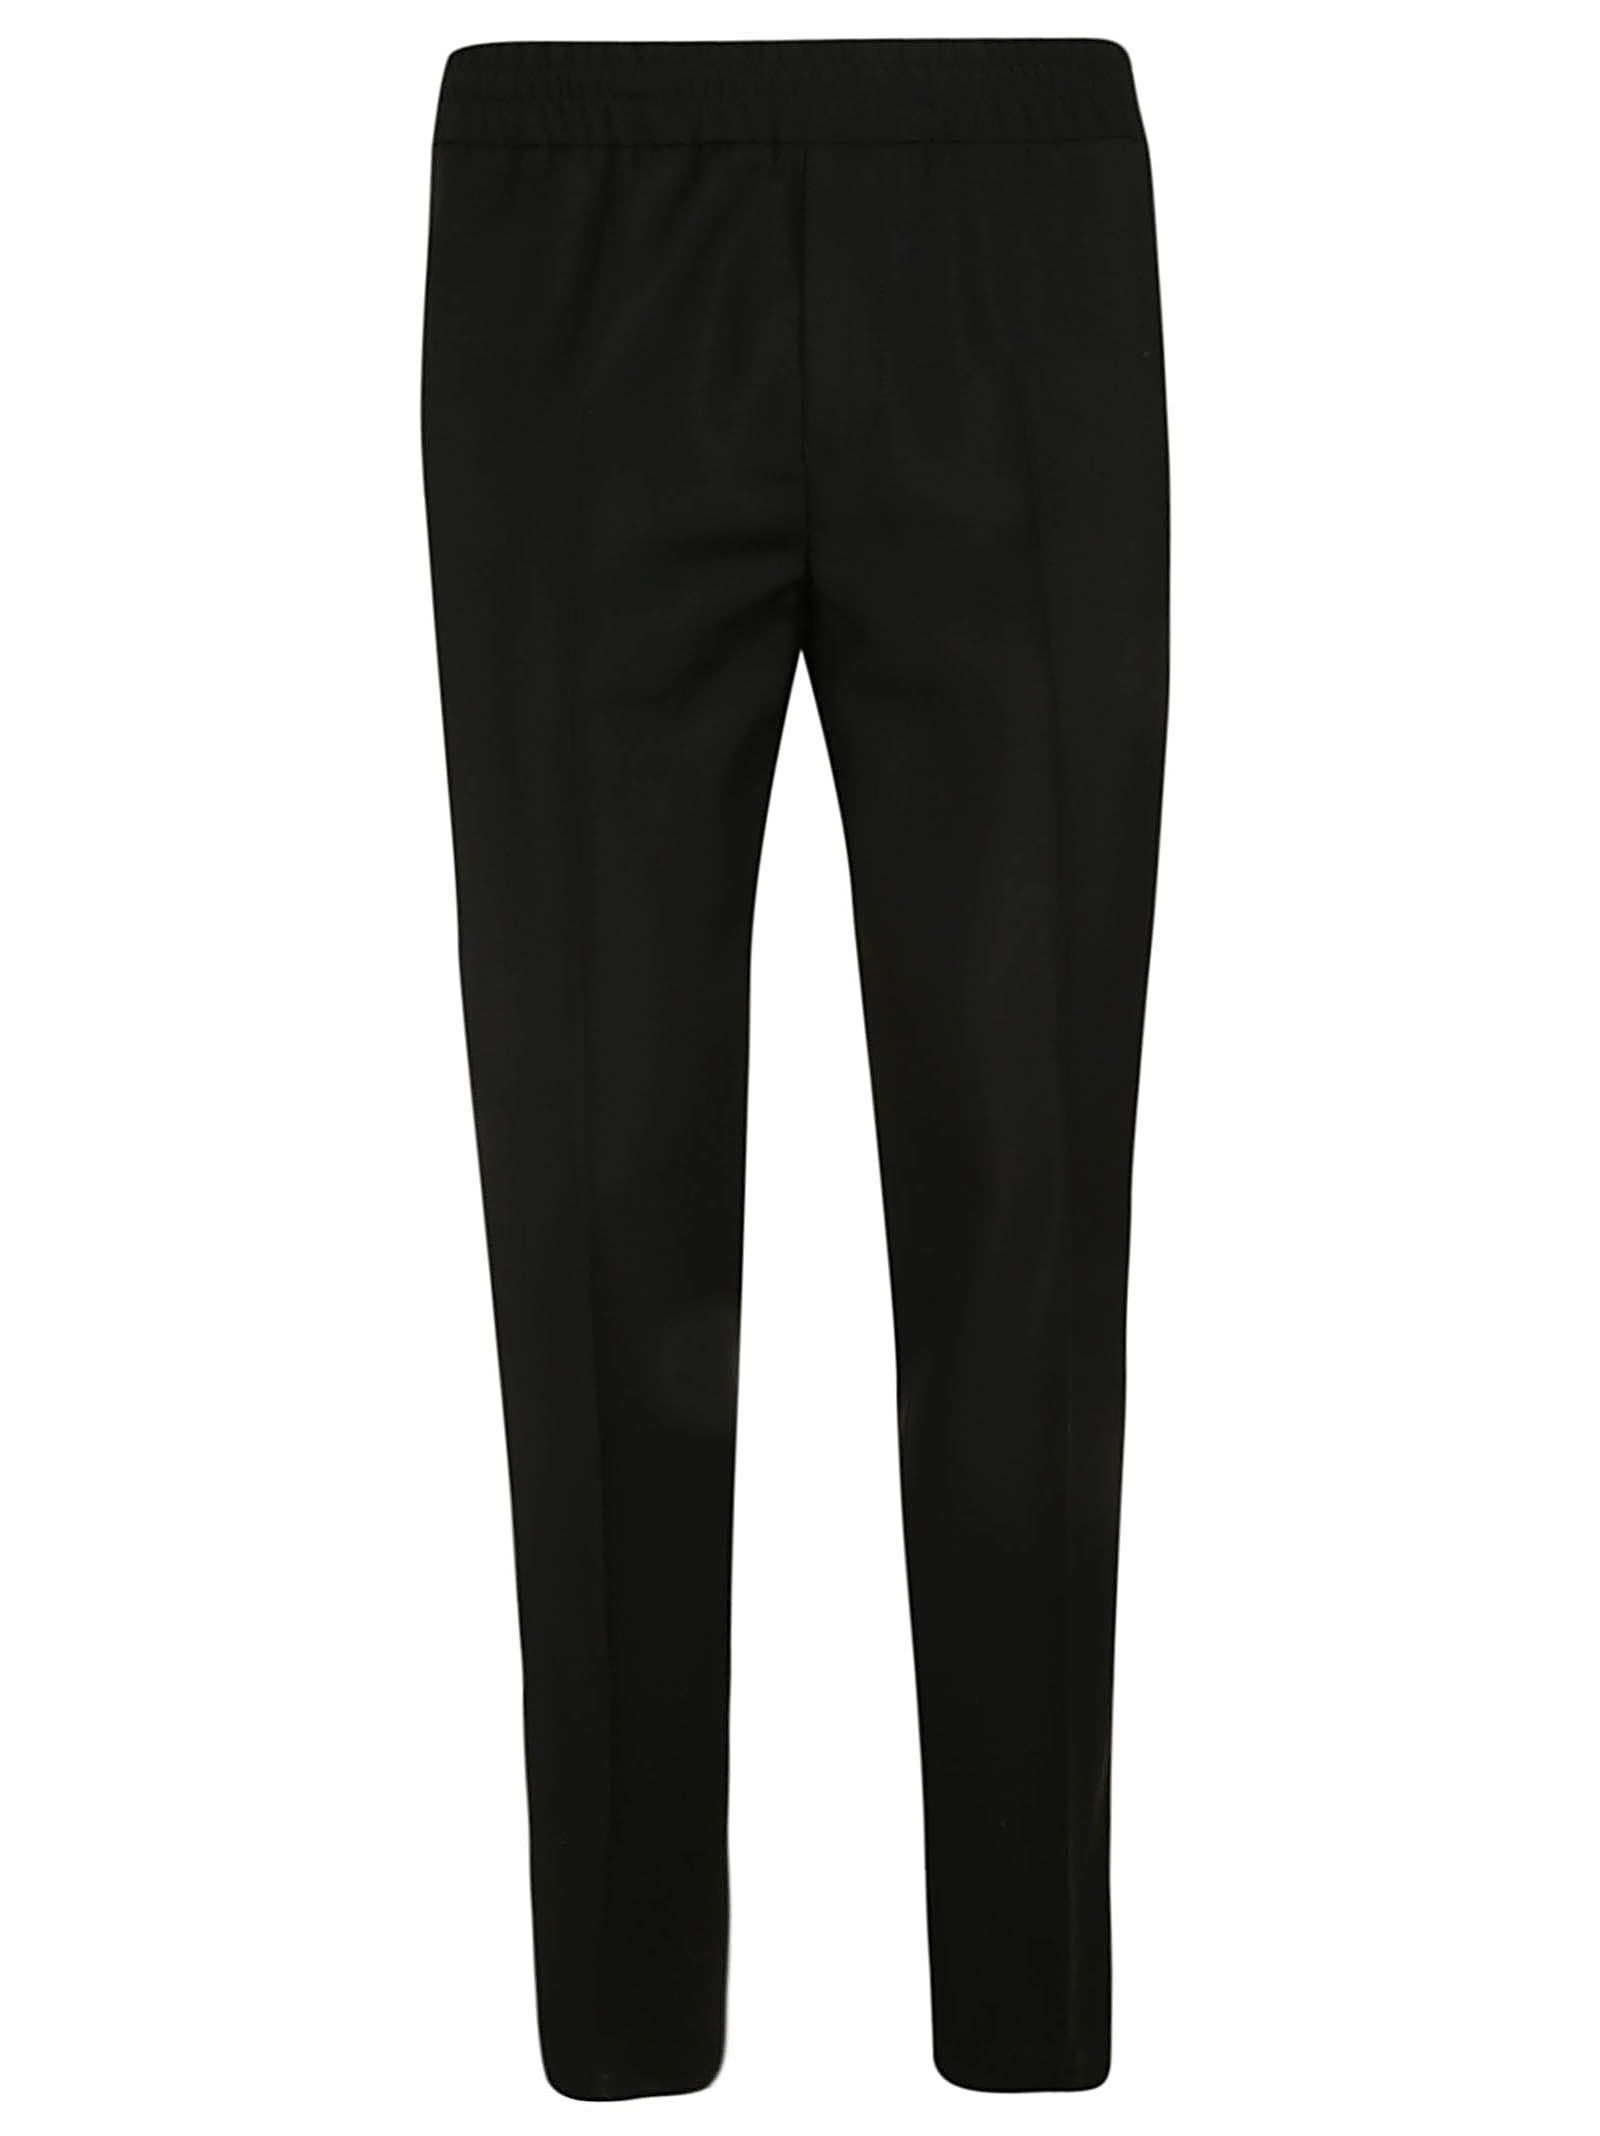 becf91f97cd0 Acne Studios Acne Studios Ryder Trousers - Black - 10847616